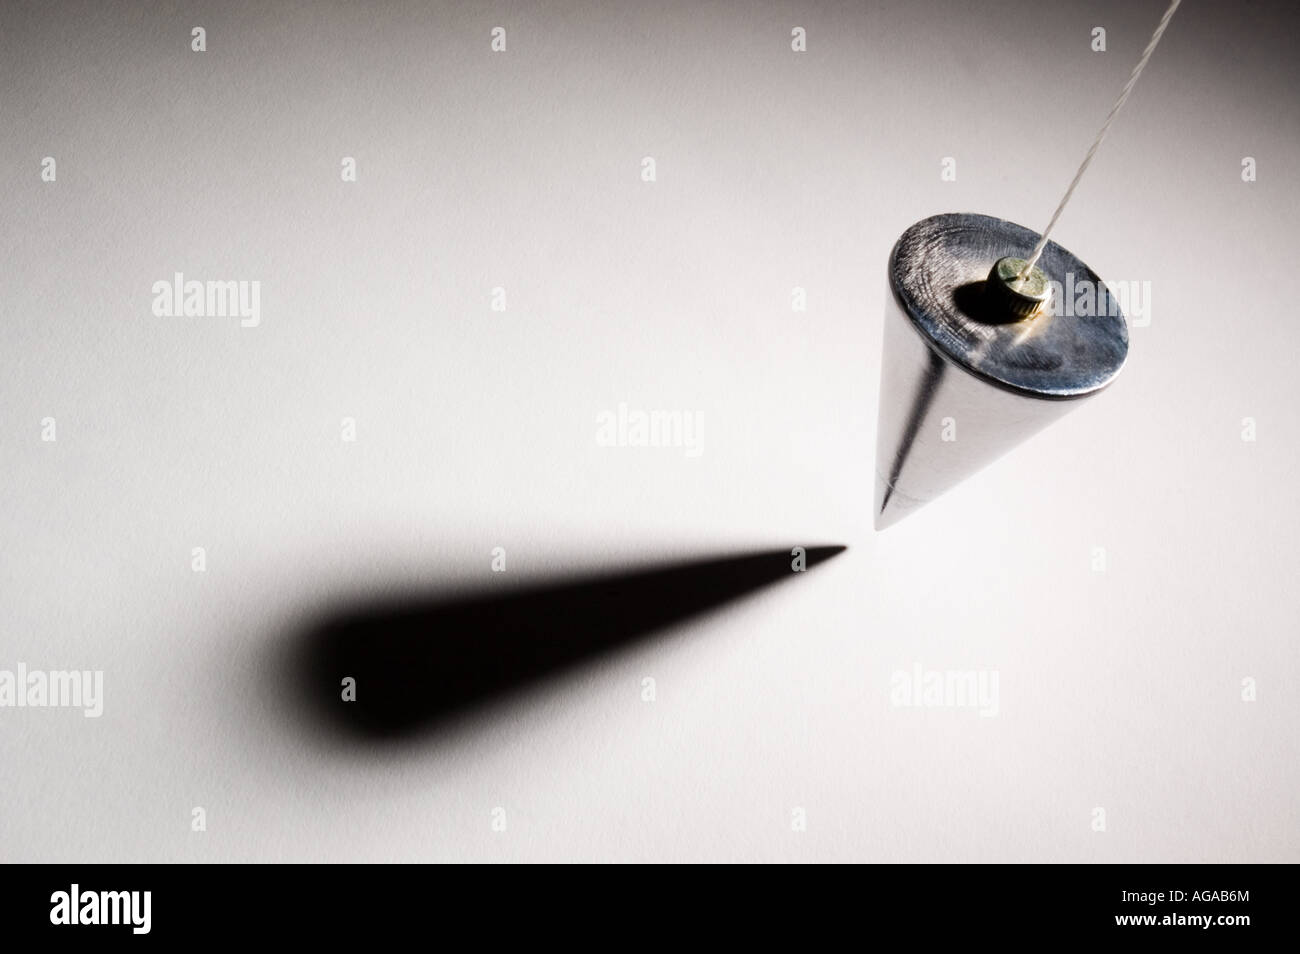 Plumb bob suspended above white surface Stock Photo